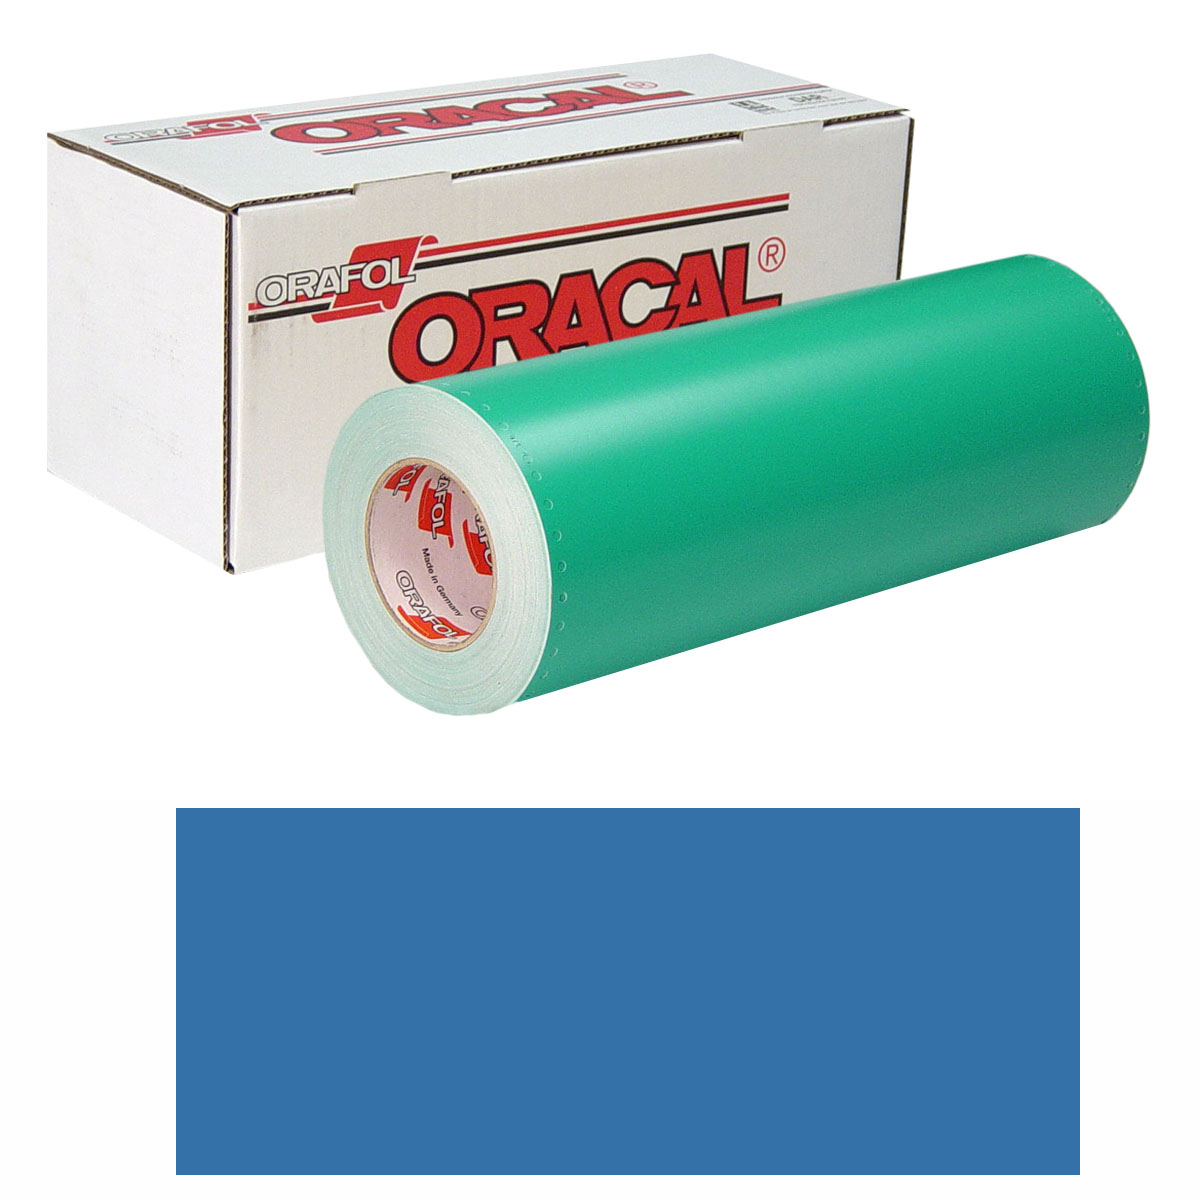 ORACAL 8500 30in X 10yd 005 Middle Blue